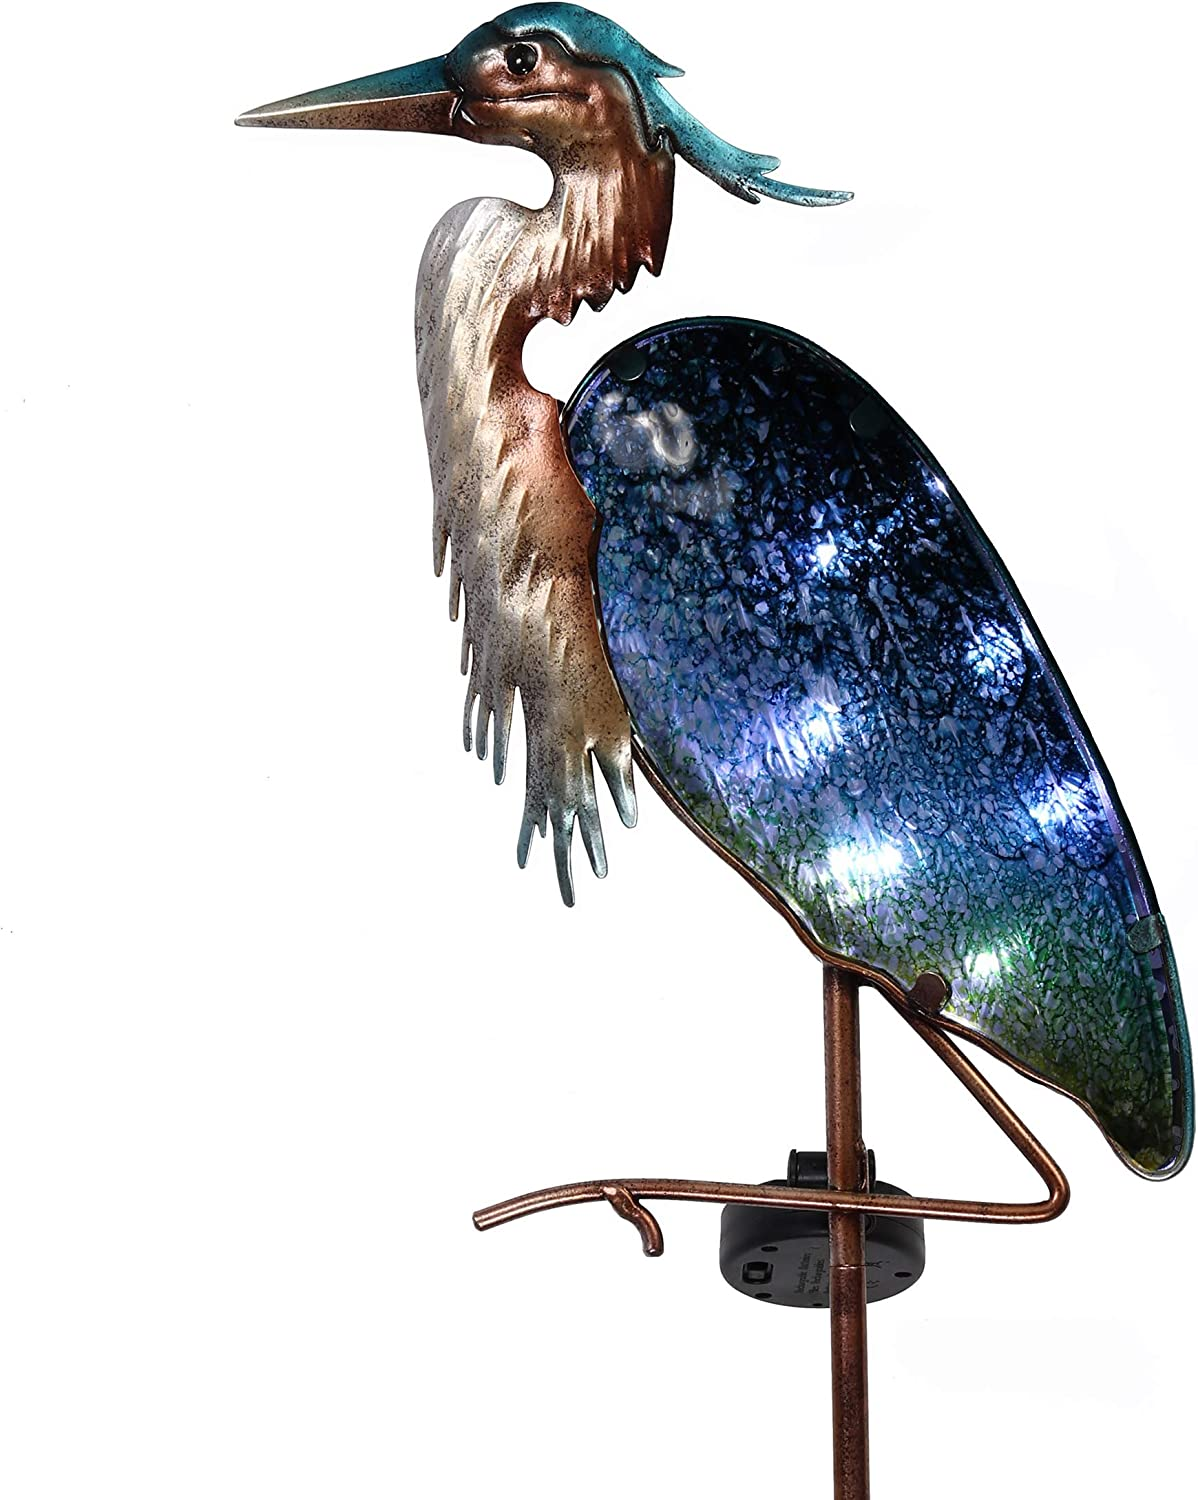 TERESA'S COLLECTIONS 42 inch Metal Heron Garden Solar Stake Lights, Decorative Heron Solar Lights Decor with Colorful Glass Body for Outdoor Lawn Patio Yard Decorations